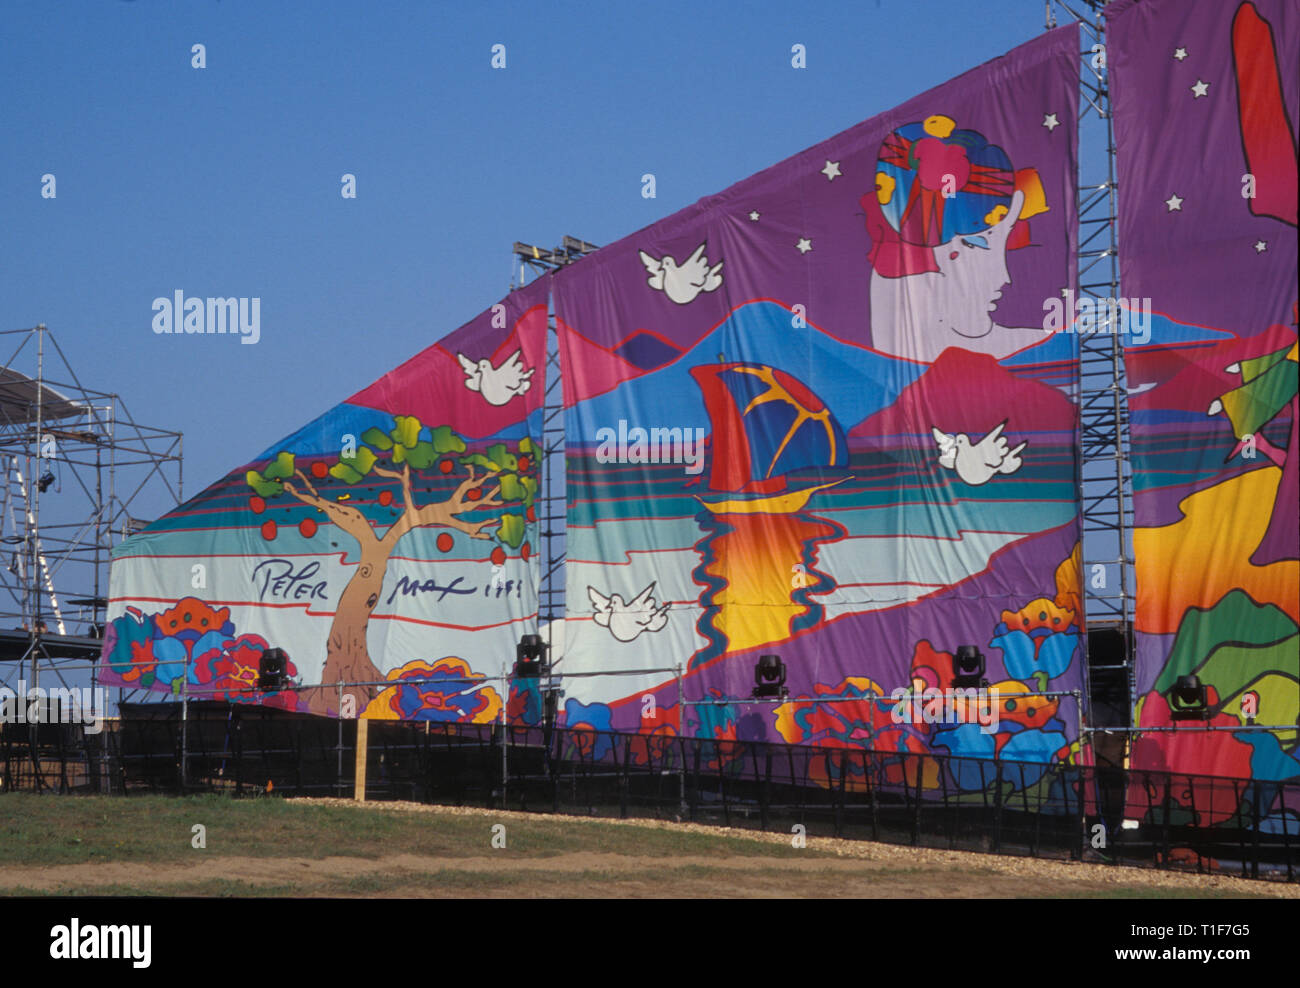 Stage Art Stock Photos & Stage Art Stock Images - Alamy